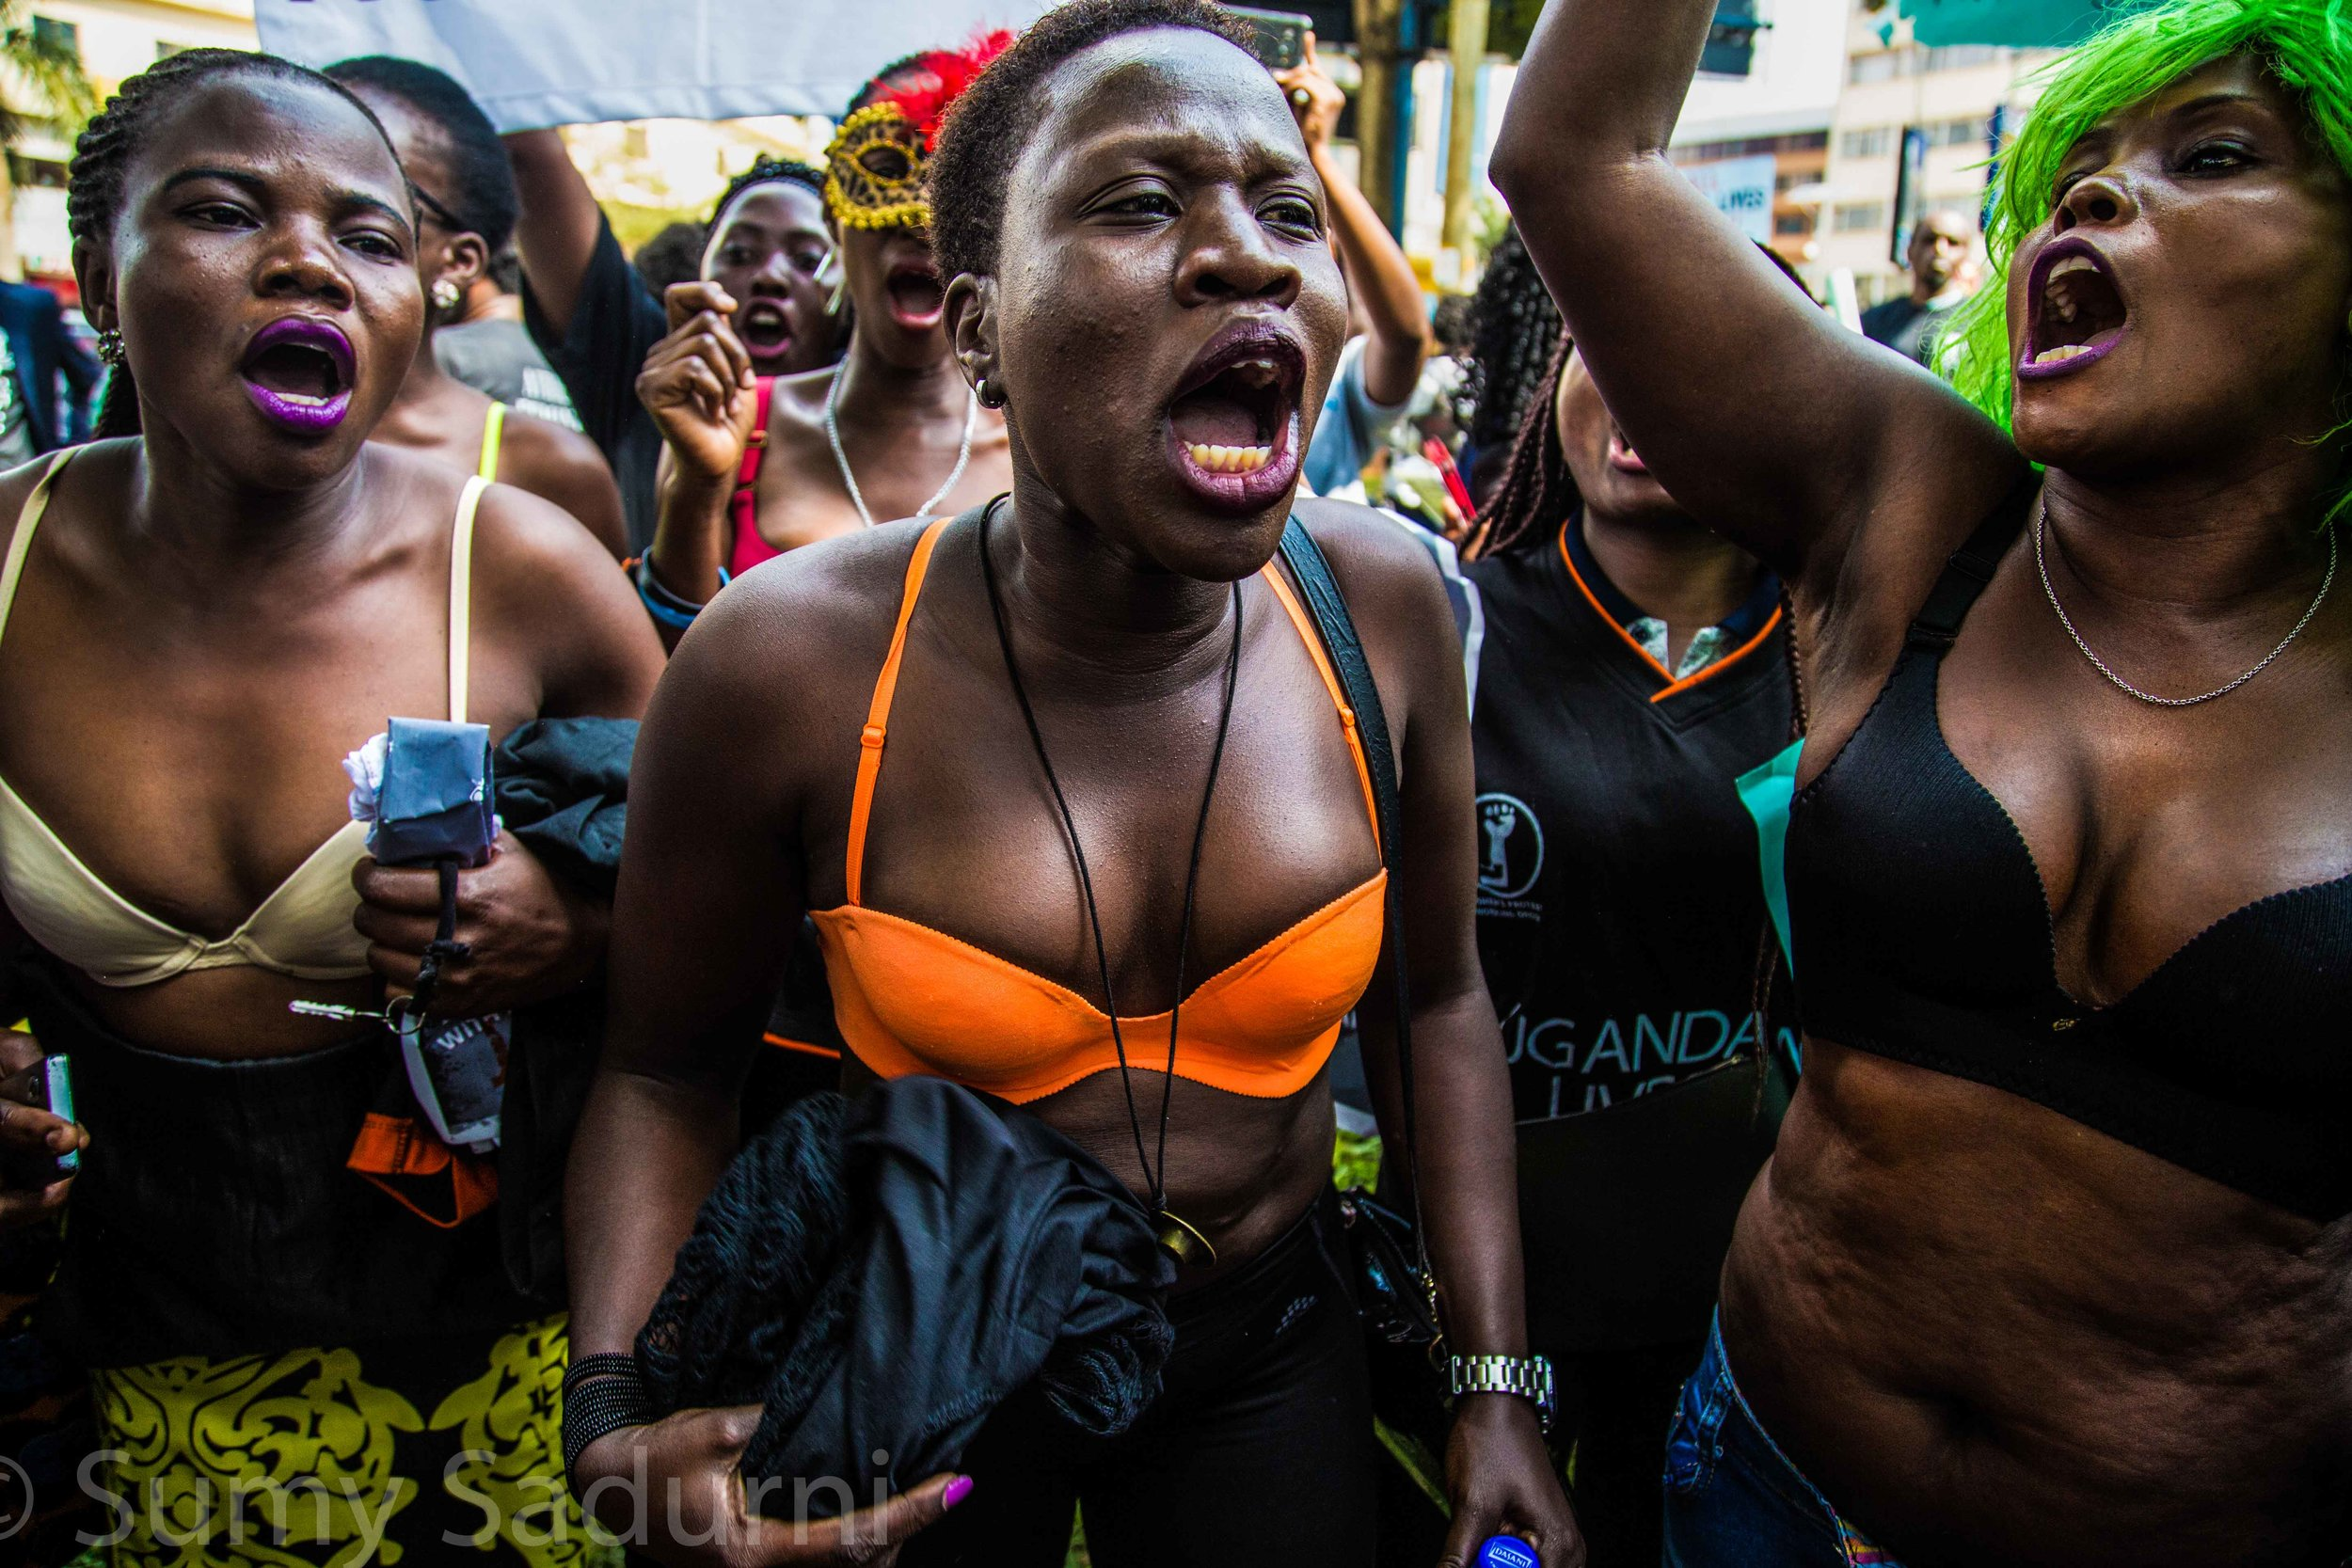 Print 11: Sex workers in Kampala defying police law as they take their tops off to protest against the lack of action taken by the government to protect women, as dozens of women were murdered in cold blood in Wakiso district.